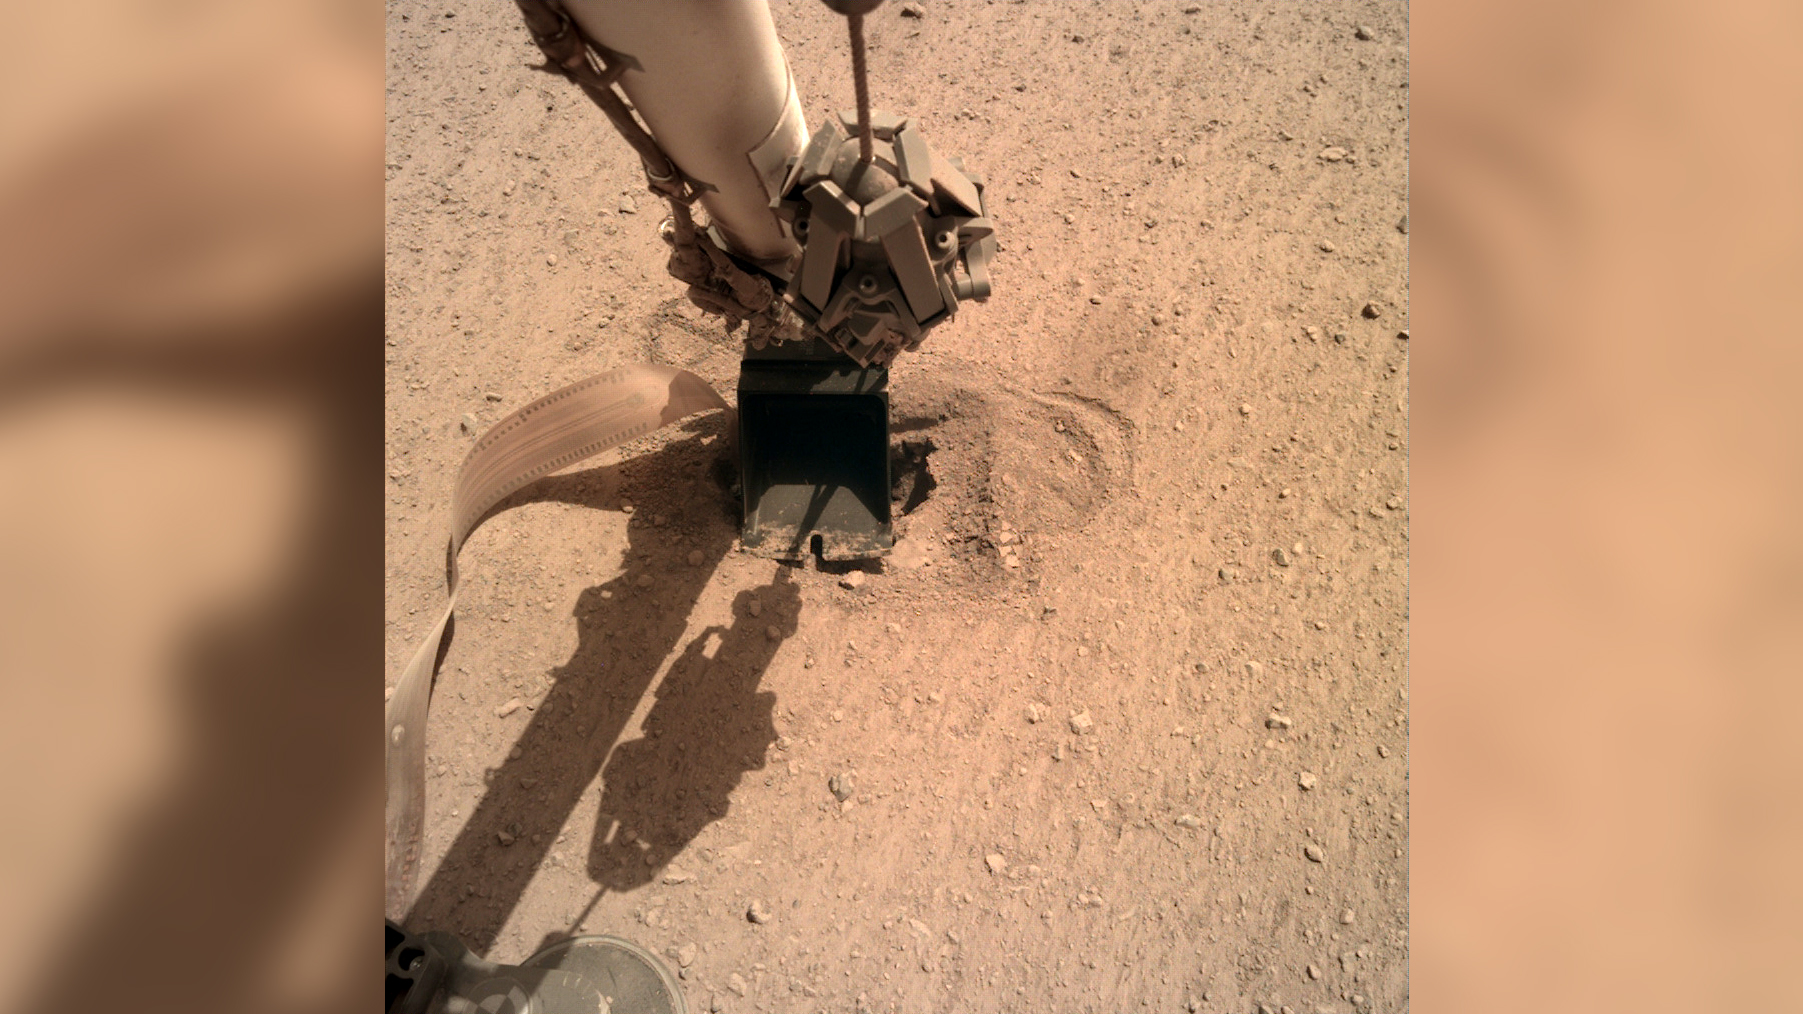 The 'mole' on Mars is lastly underground after a push from NASA's InSight lander